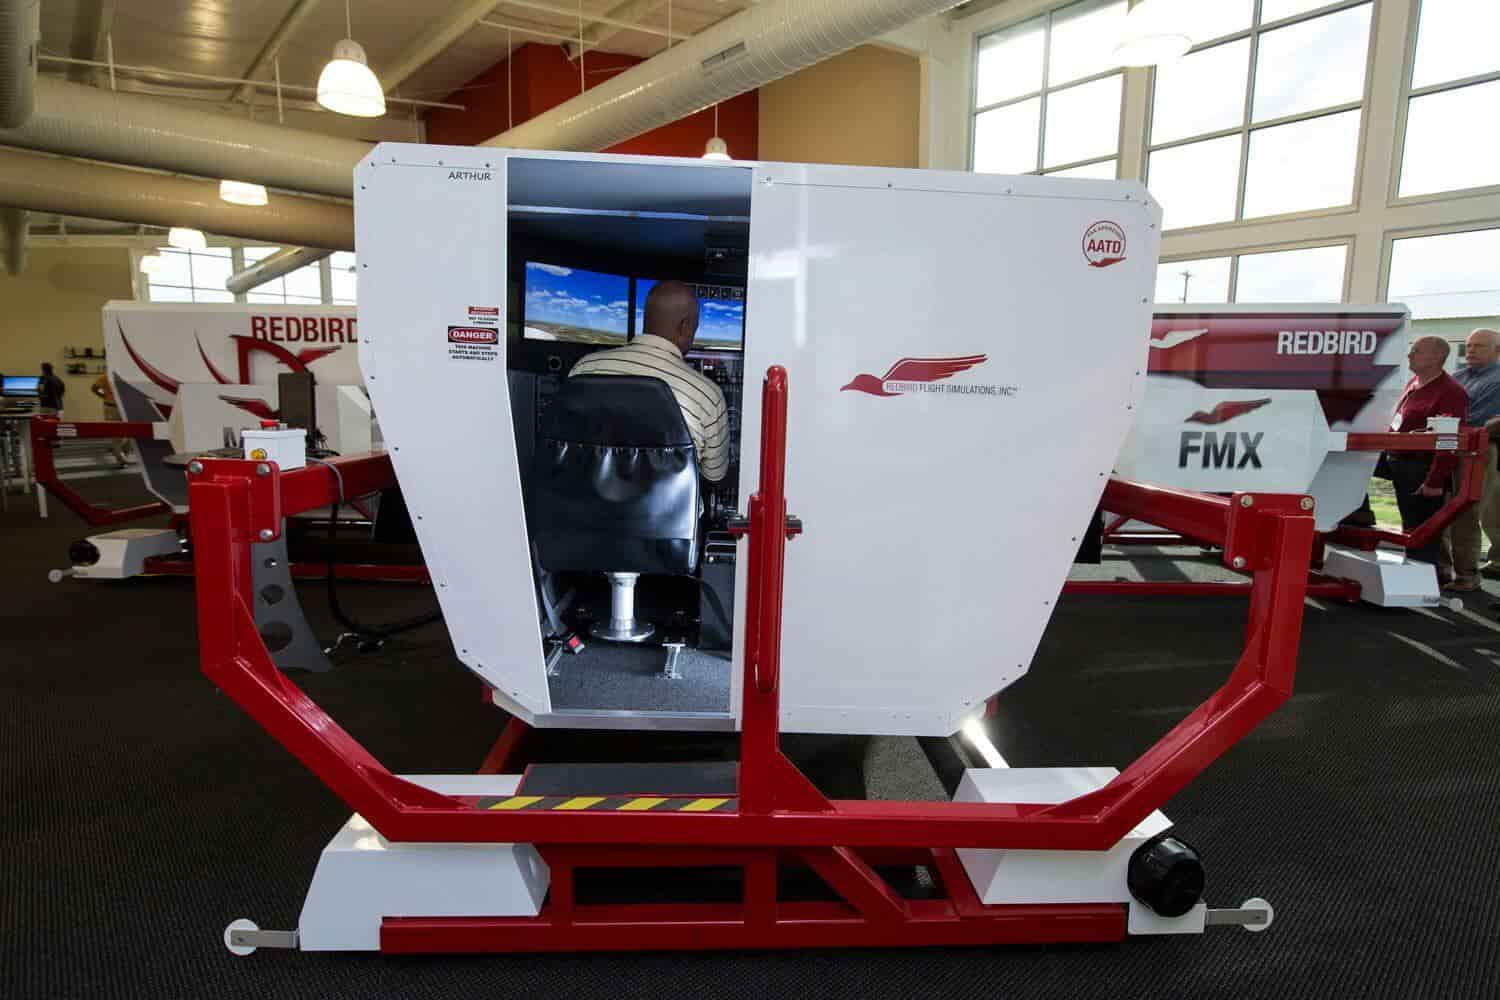 Redbird FMX flight simulator in Florida